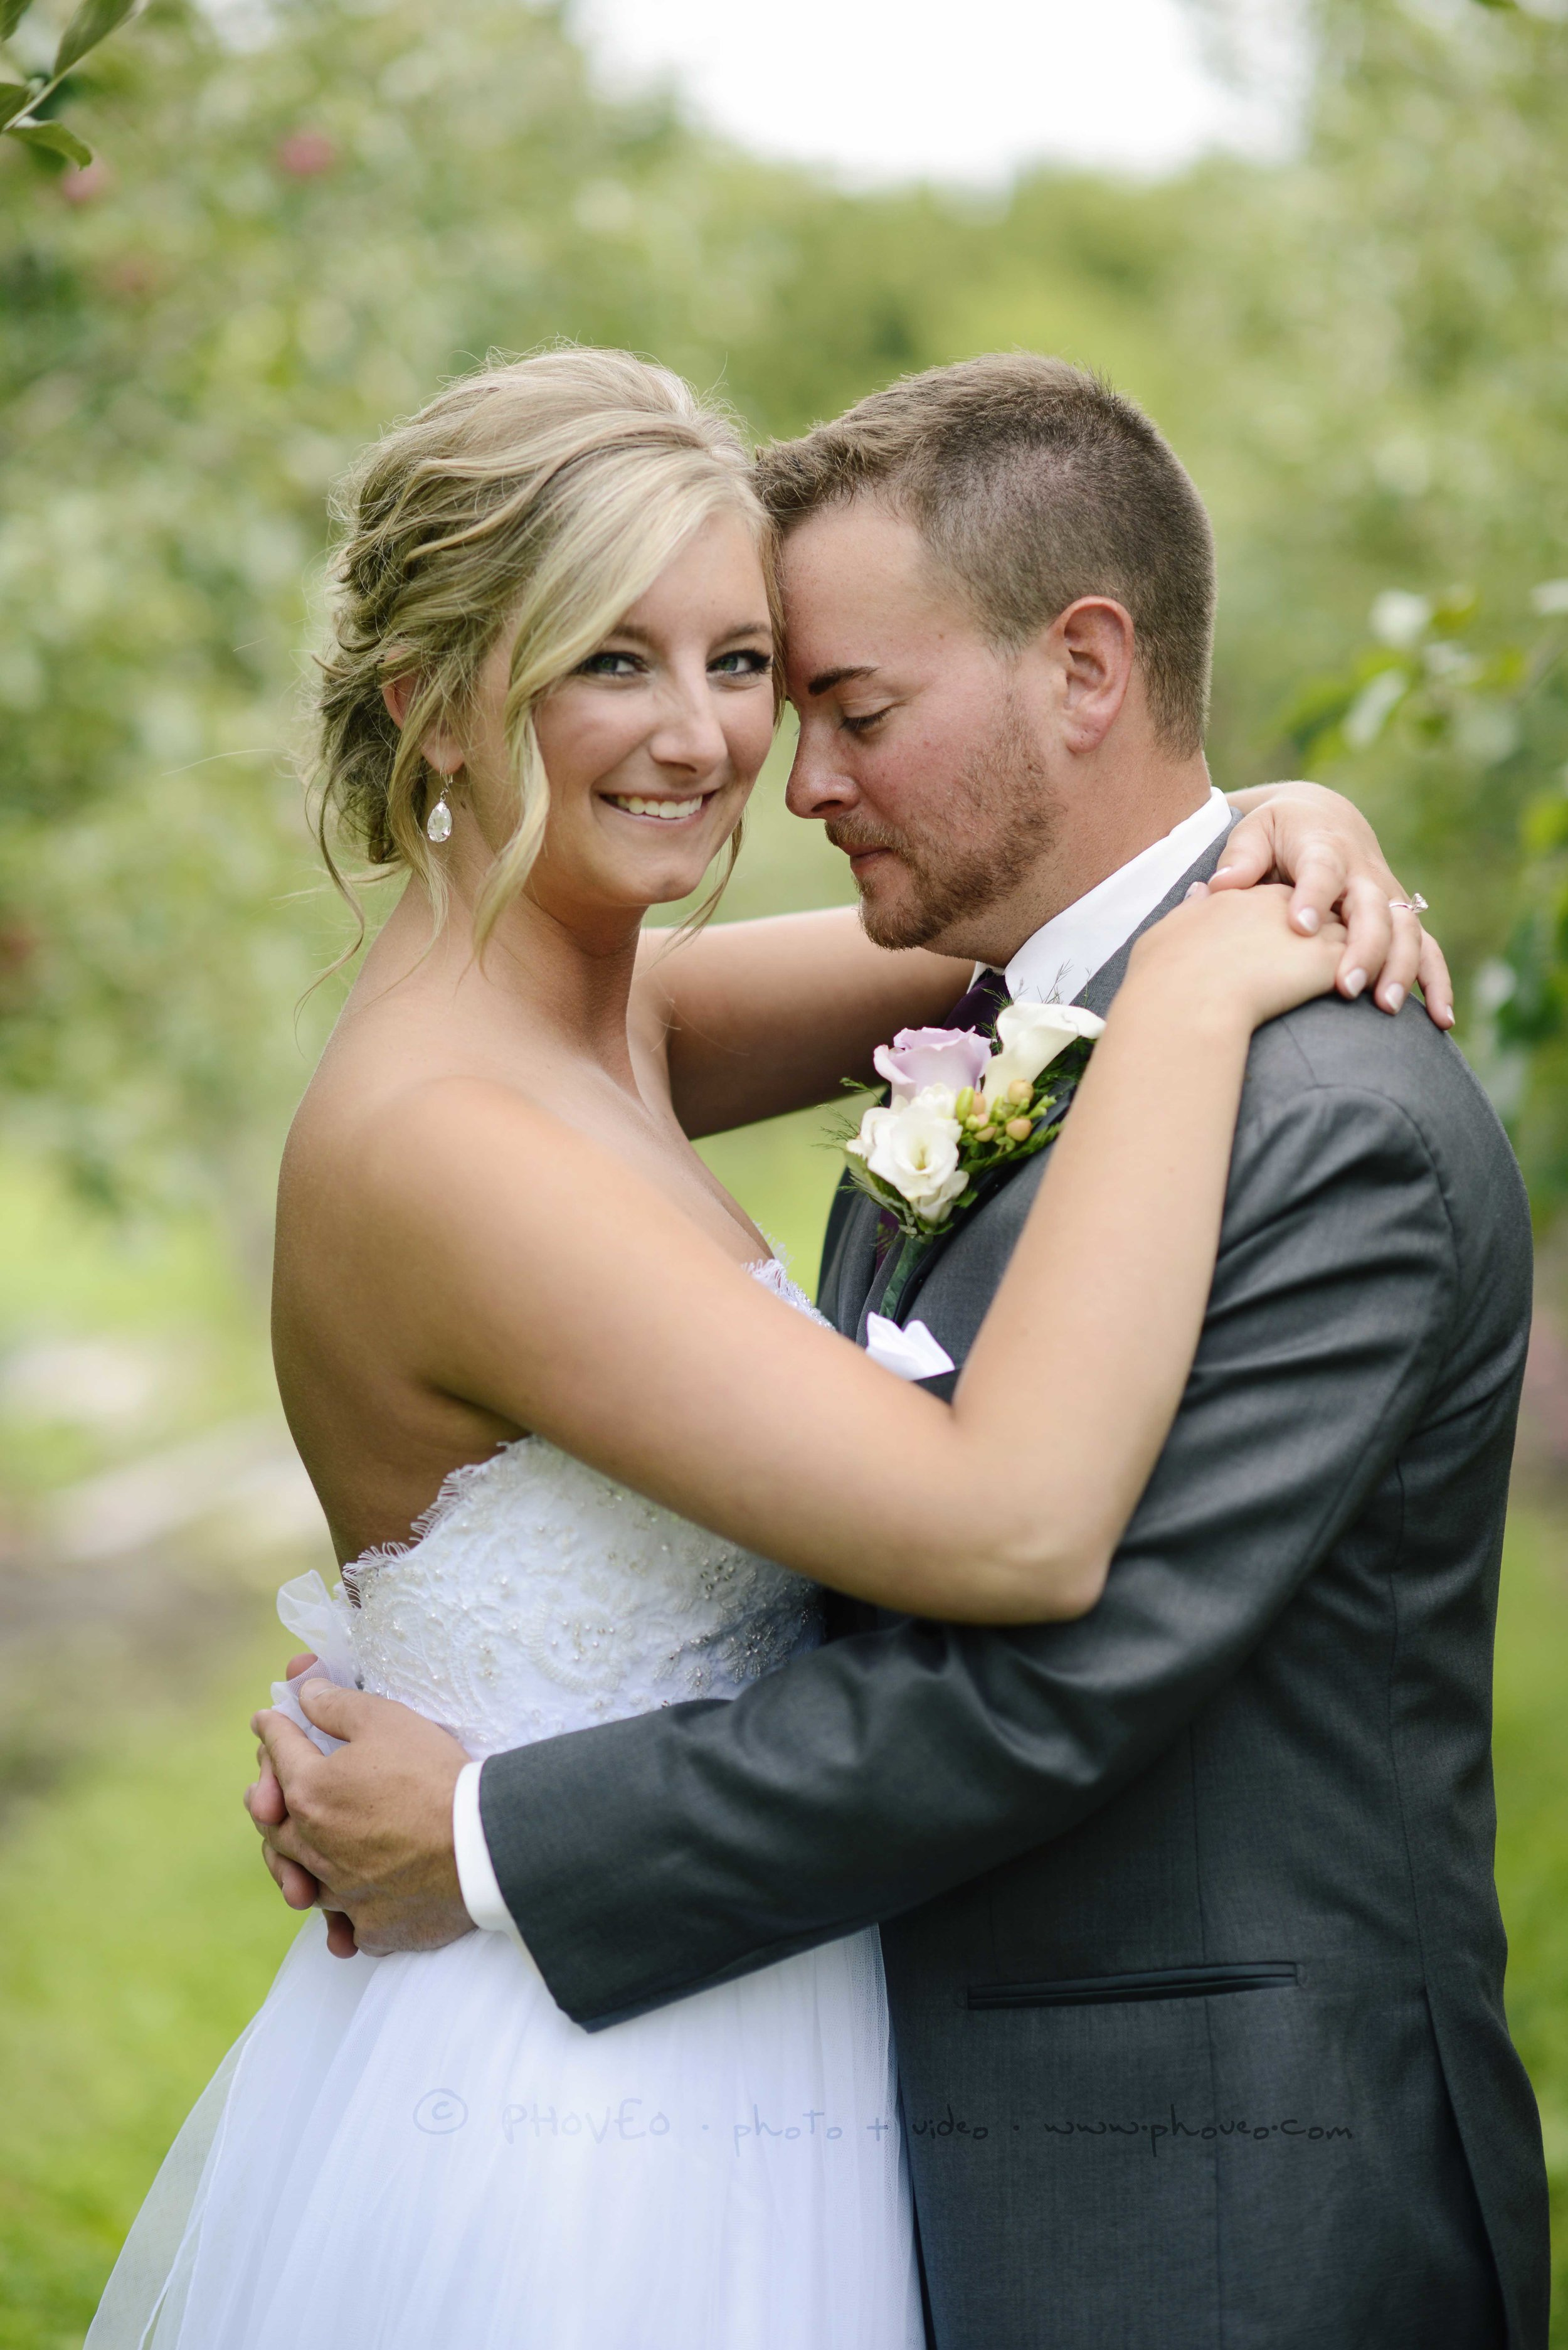 WM_20160826_Katelyn+Tony_130.jpg